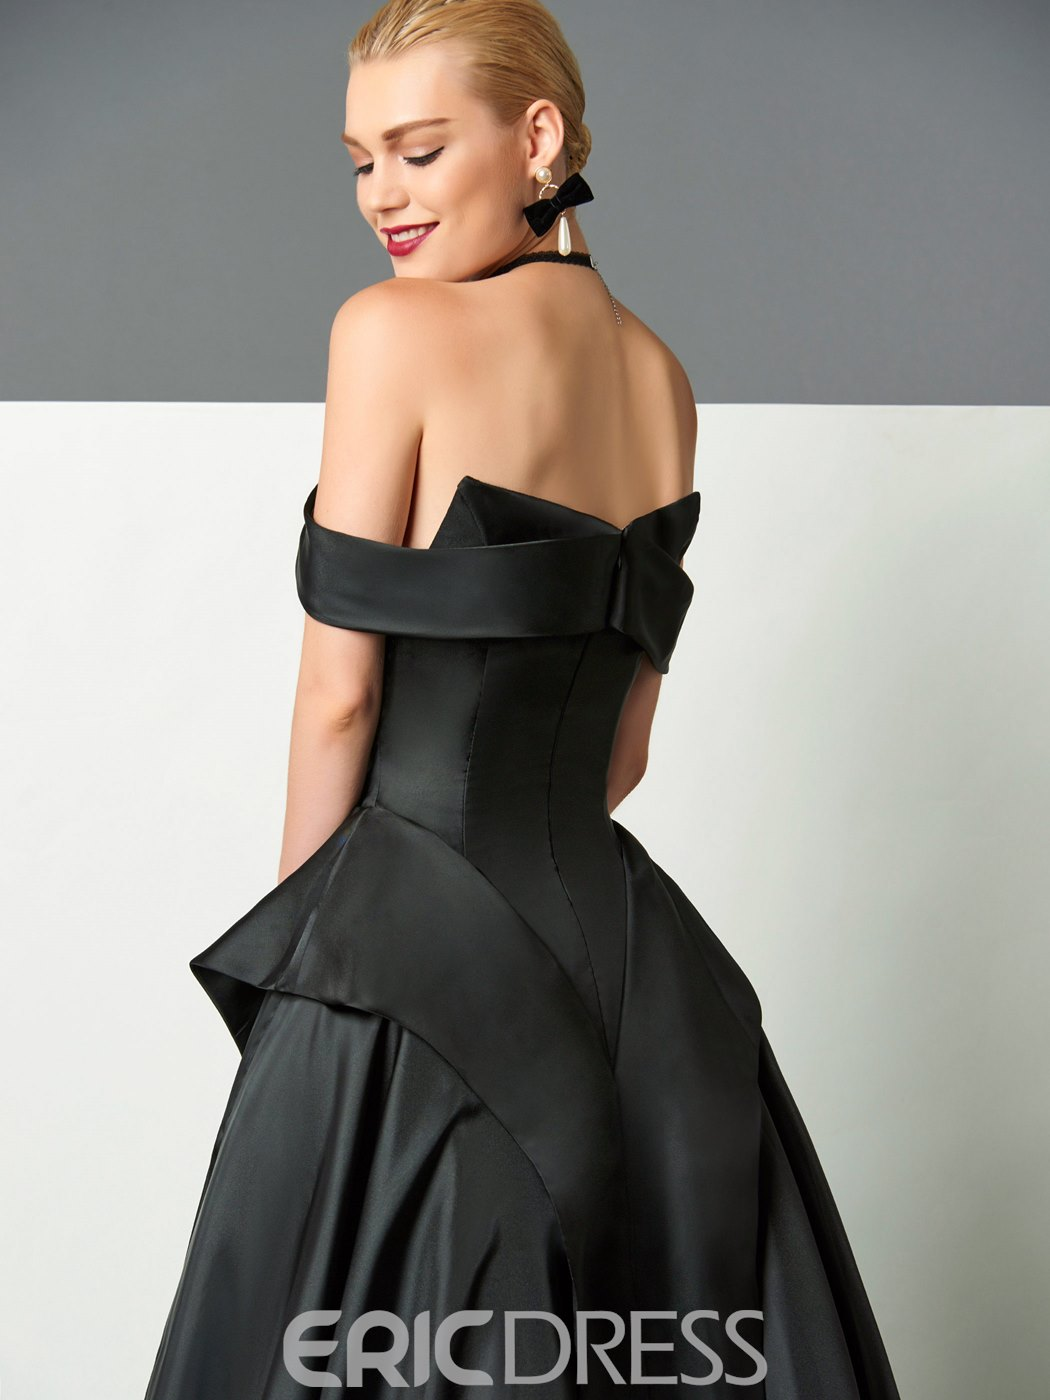 Ericdress A-Line Off-the-Shoulder Cap Sleeves Ruffles Sweep Train Evening Dress